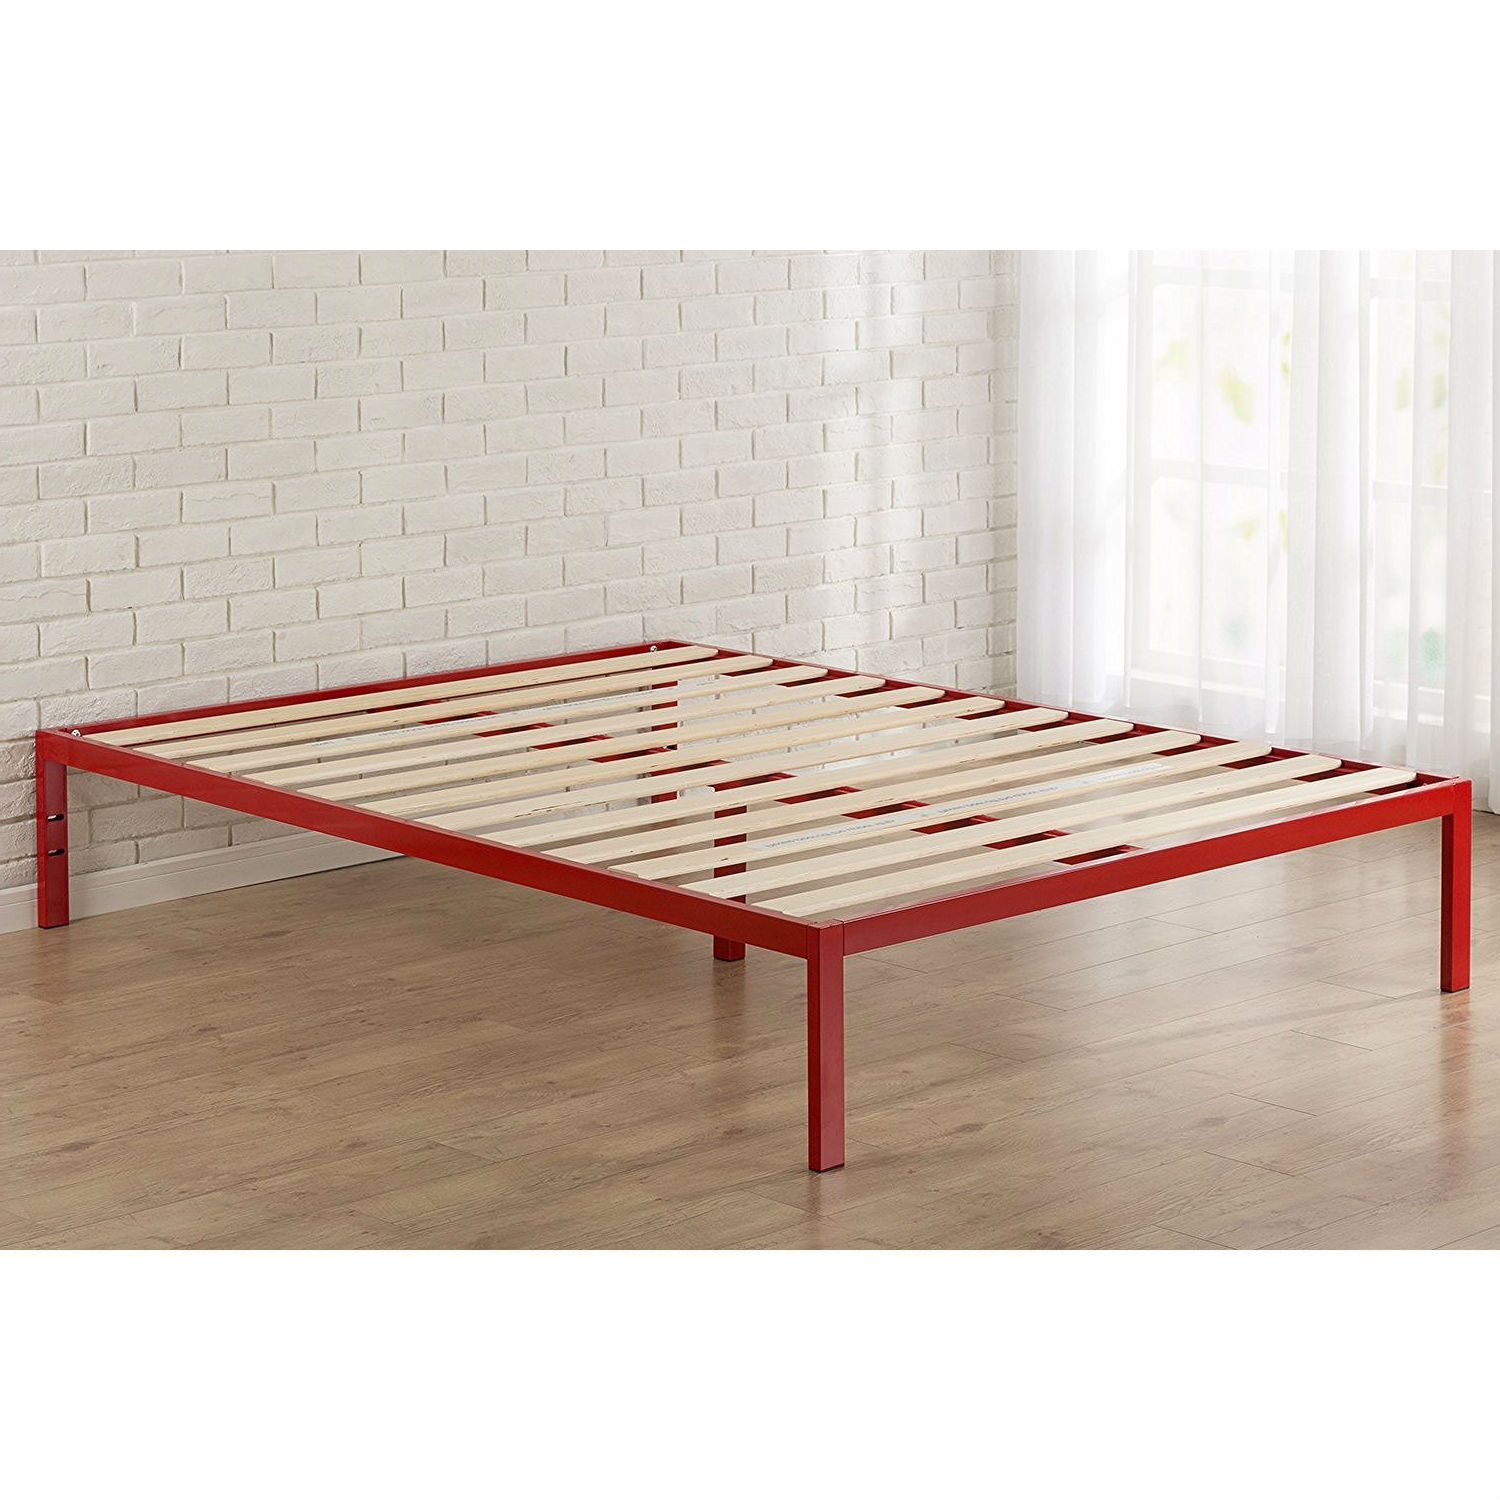 Full size 14-inch High Platform Bed with Red Metal Frame and Wooden ...